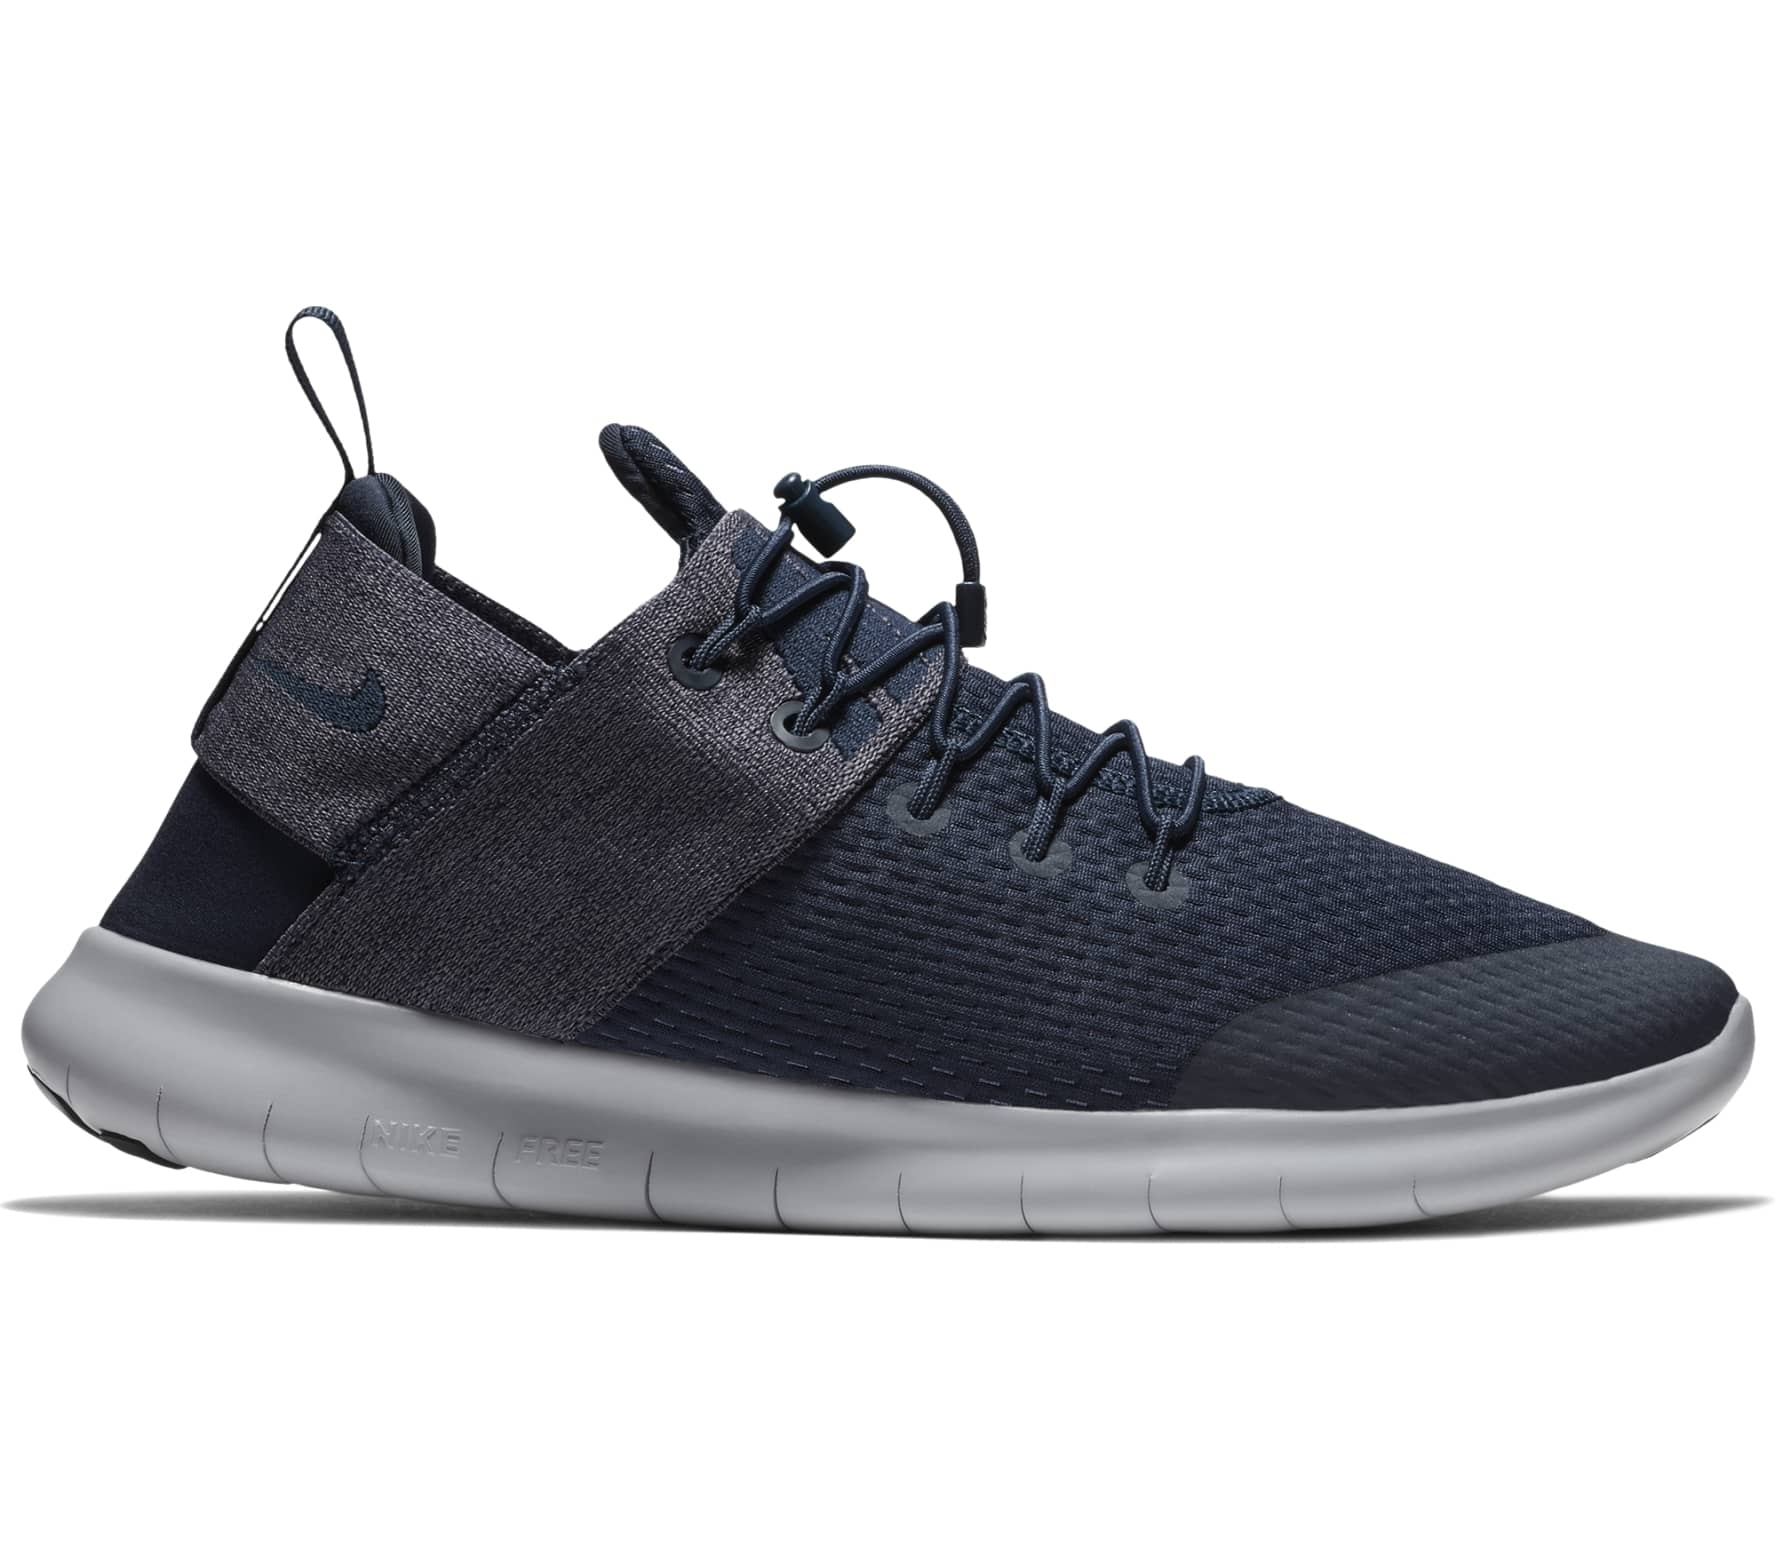 size 40 e4c33 a3085 Nike - Free RN Commuter 2017 men s running shoes (dark blue grey)